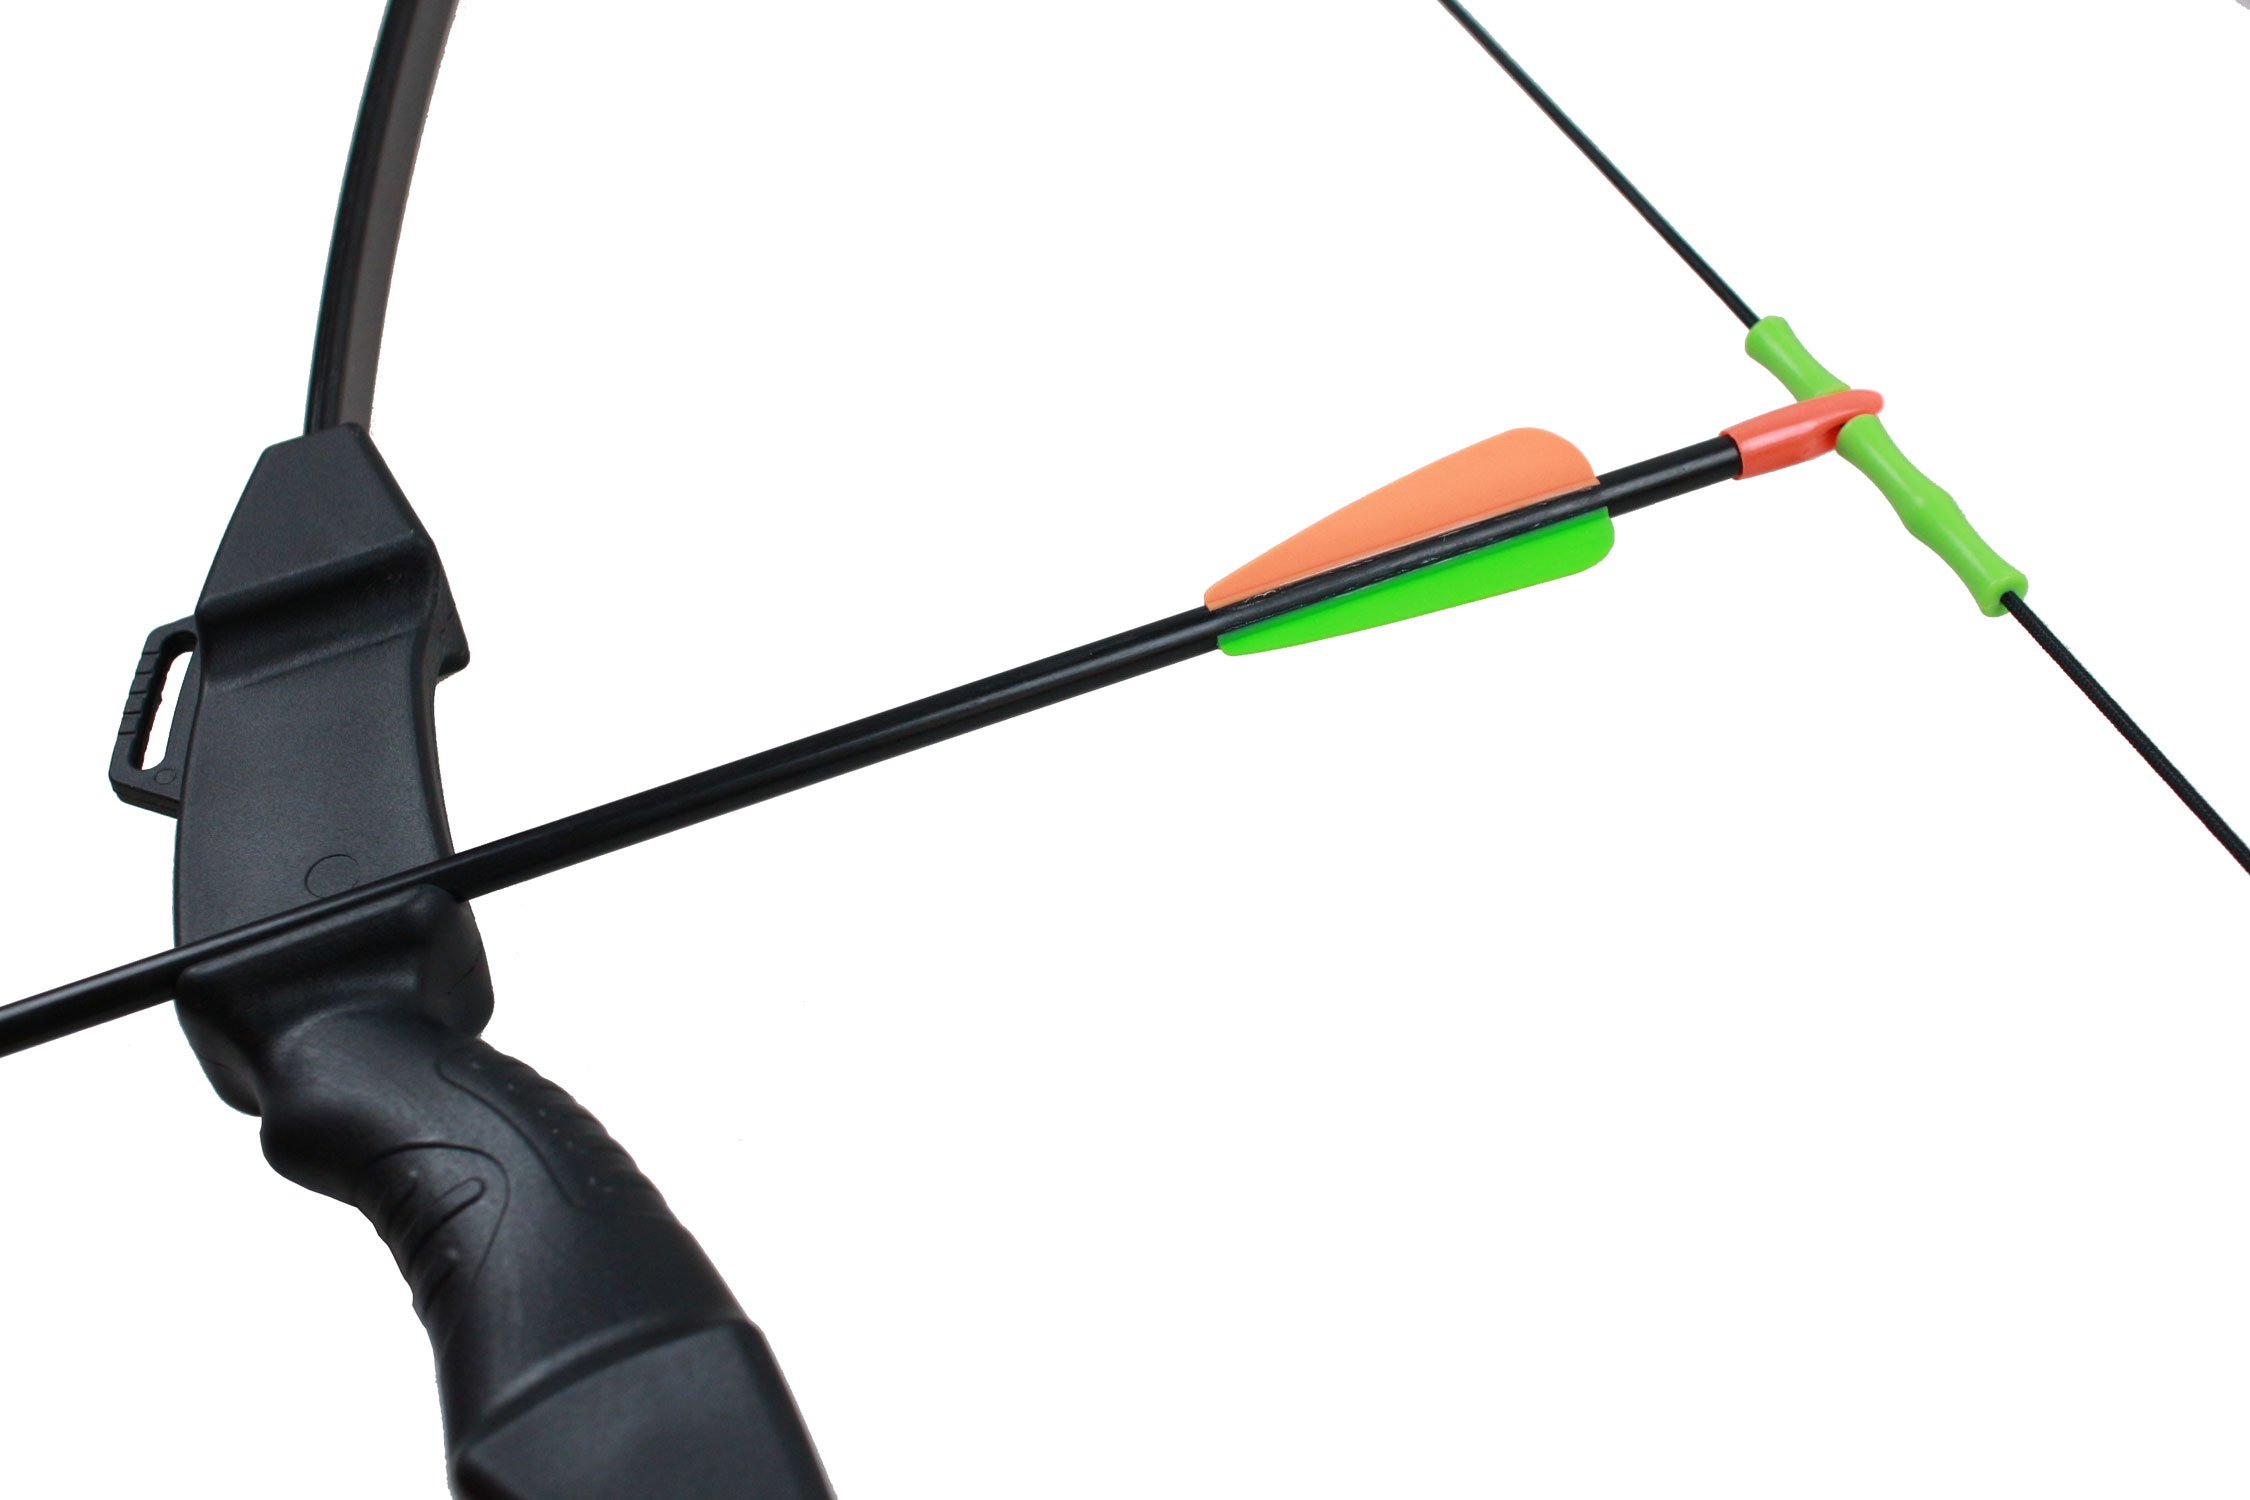 Geelife 45'' Basic Archery Bow and Arrow Set Start Recurve Bow Outdoor Sports Game Hunting Toy Gift Bow Kit Set with 2 Arrows and Target Sheet 18 Lb for Teens by Geelife (Image #4)